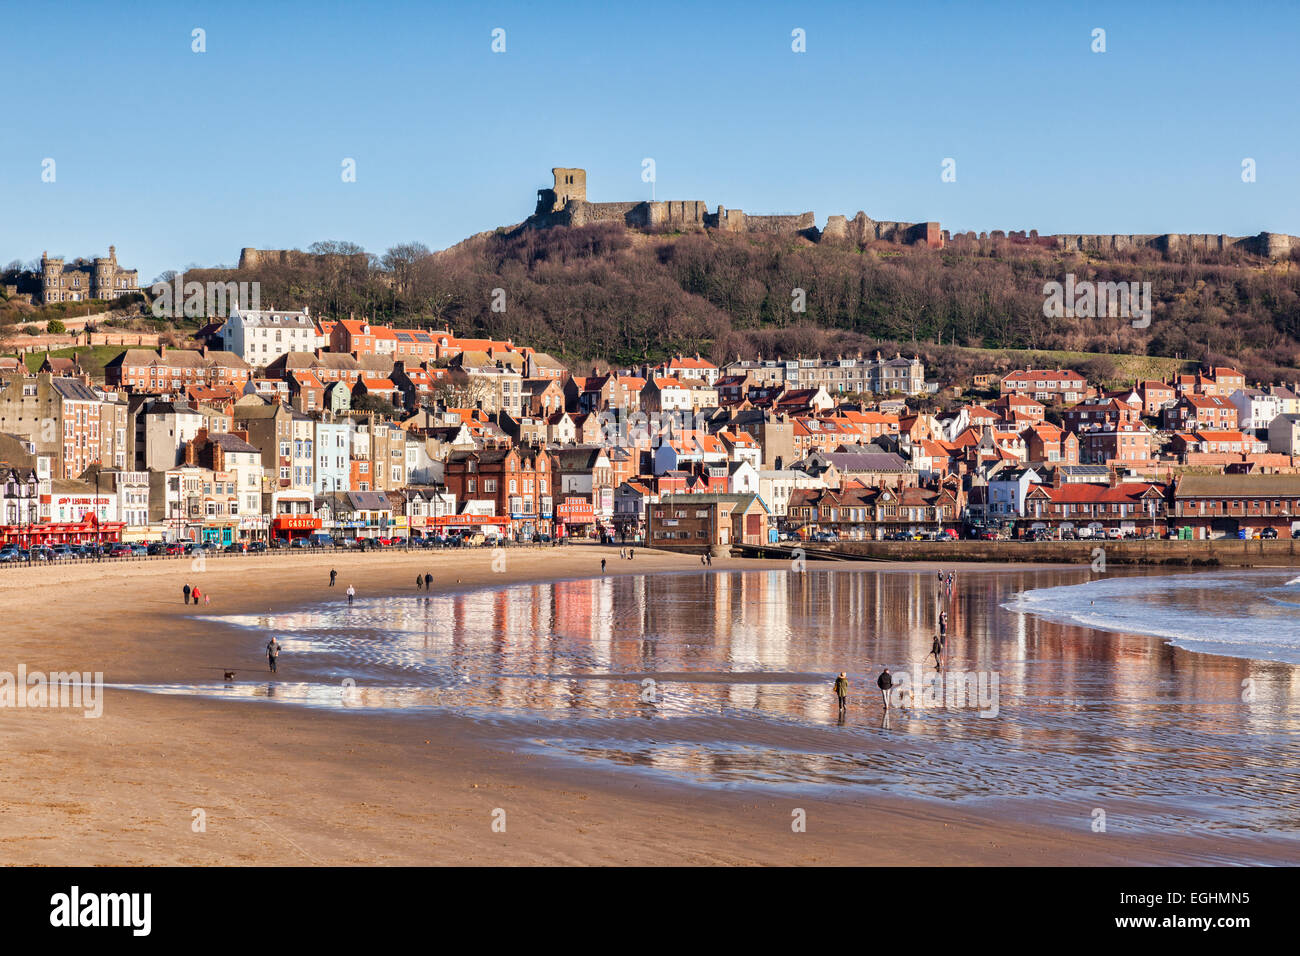 A bright winter day in Scarborough, North Yorkshire, England, UK, a view over the beach to the castle, with people - Stock Image